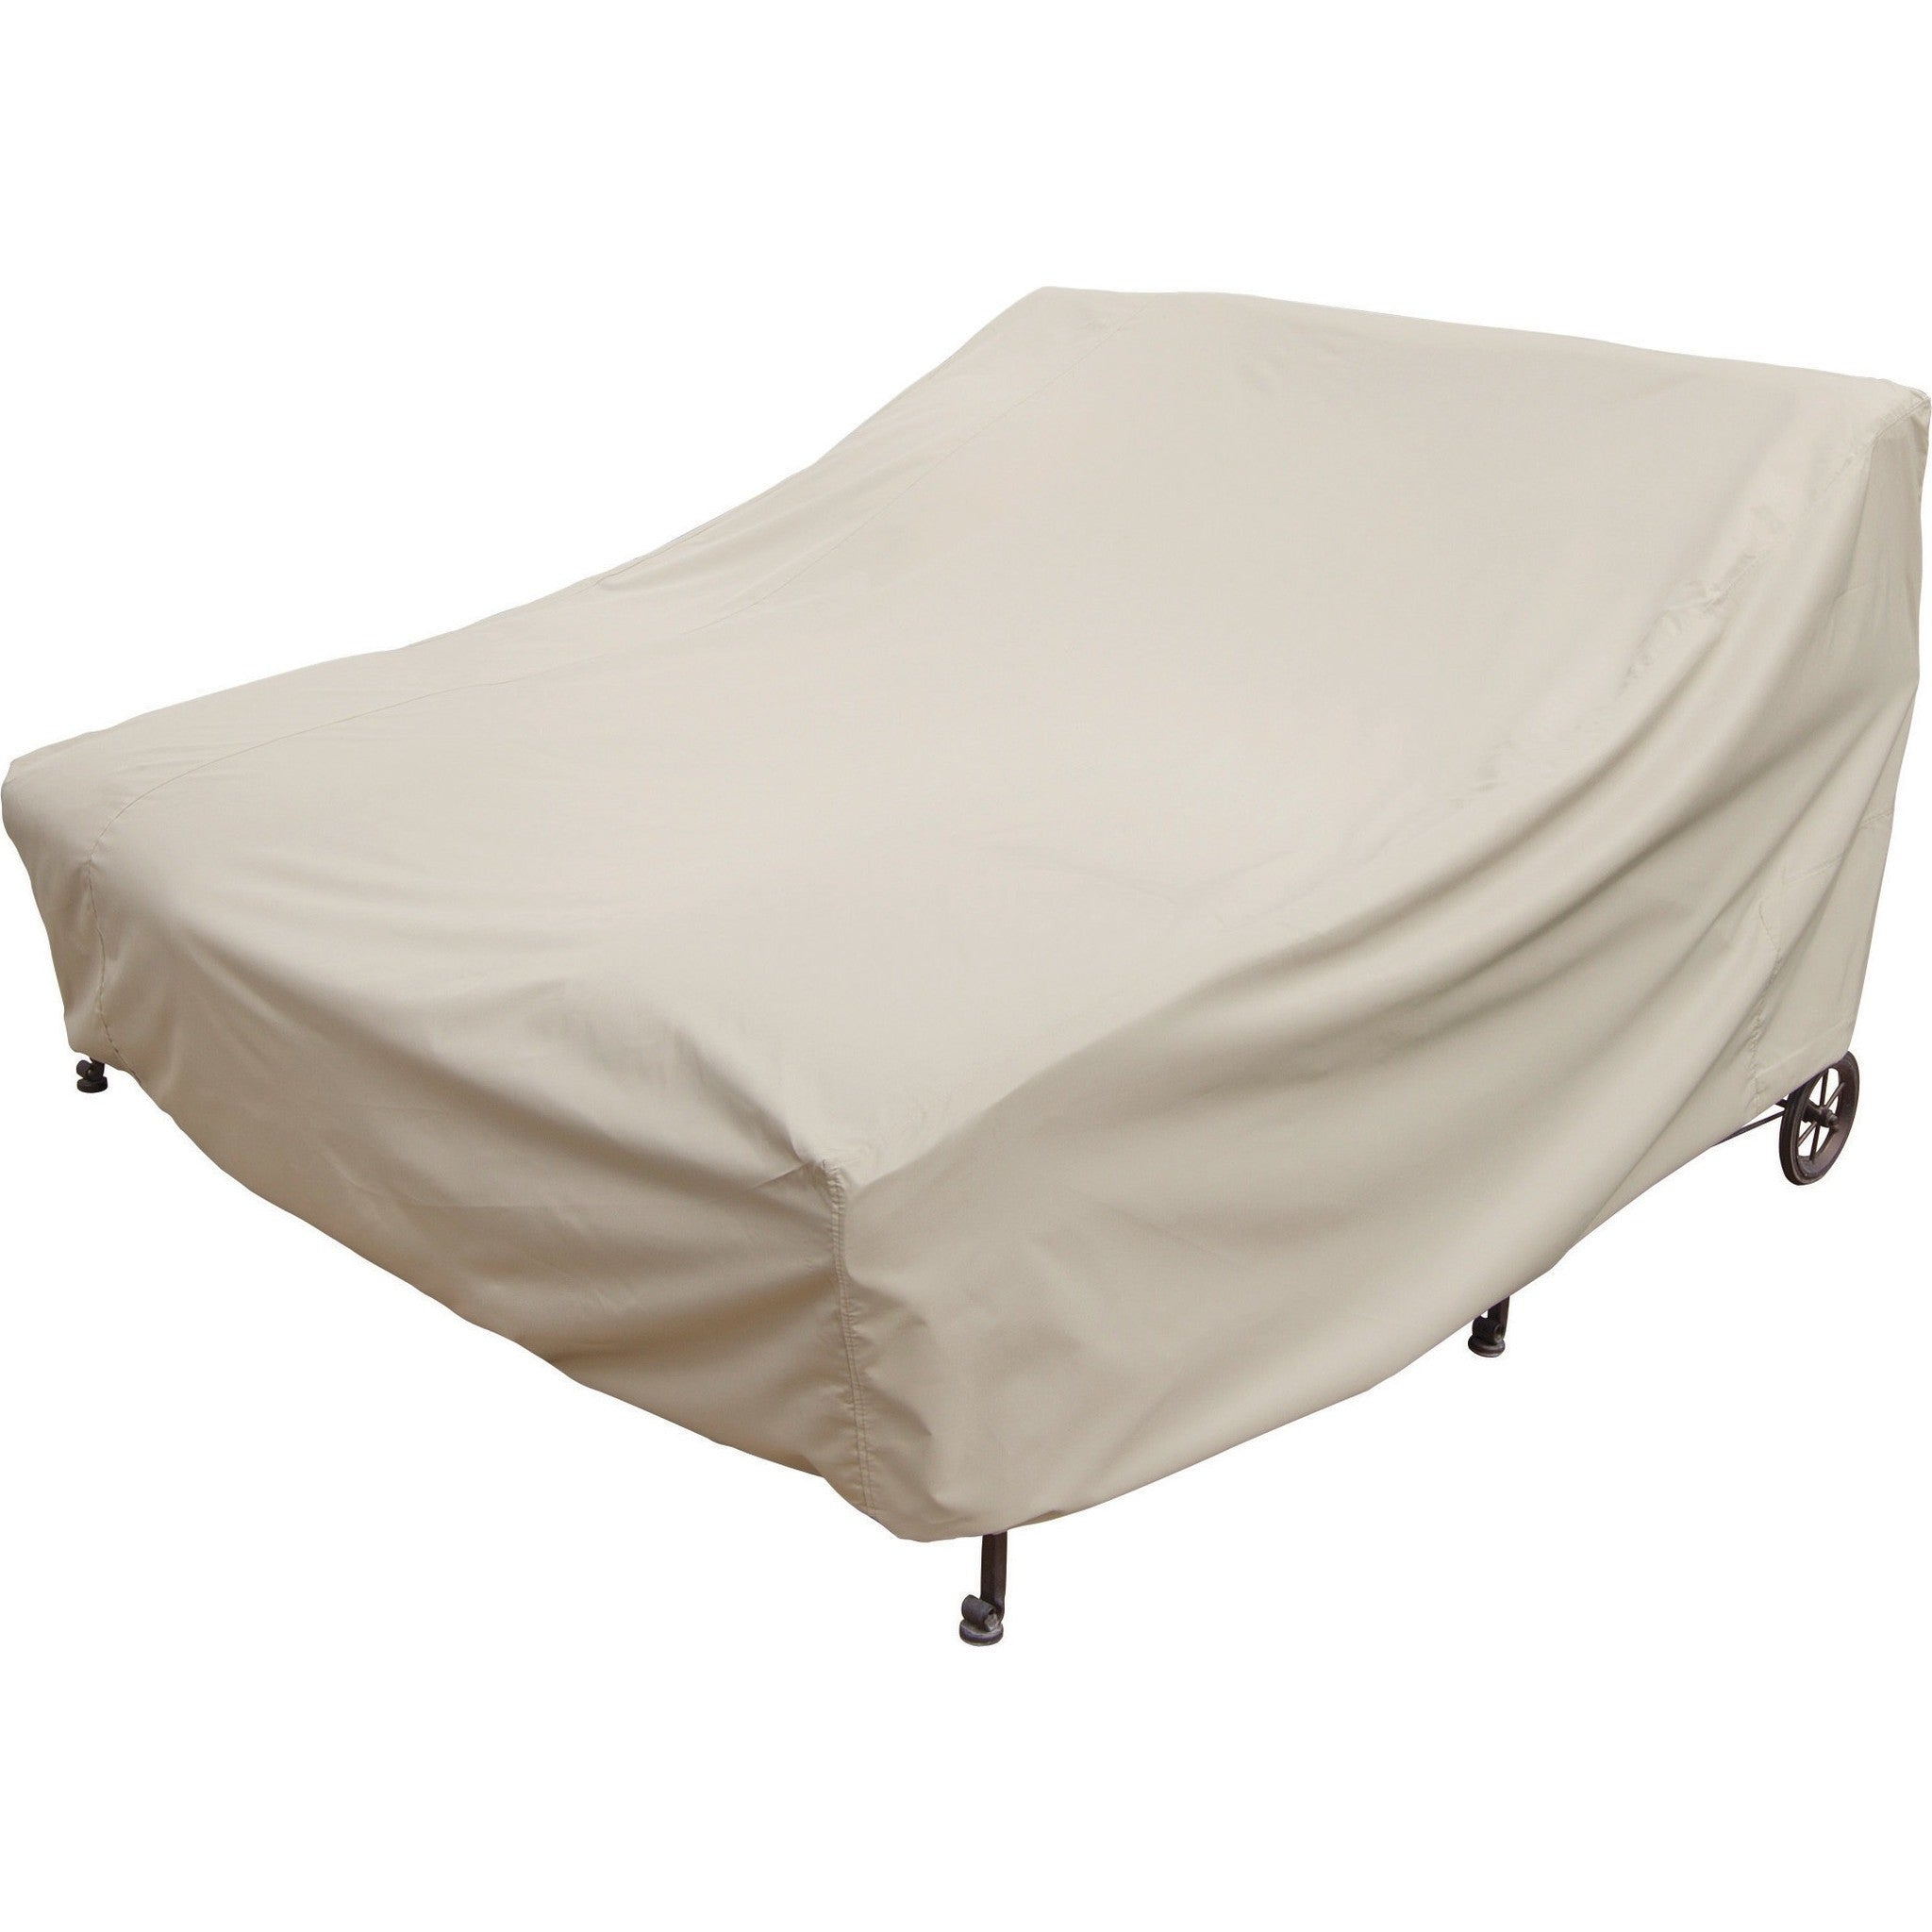 Double Chaise Lounge Cover with Ties - CP141, Outdoor Accessories, Treasure Garden - Danny Vegh's